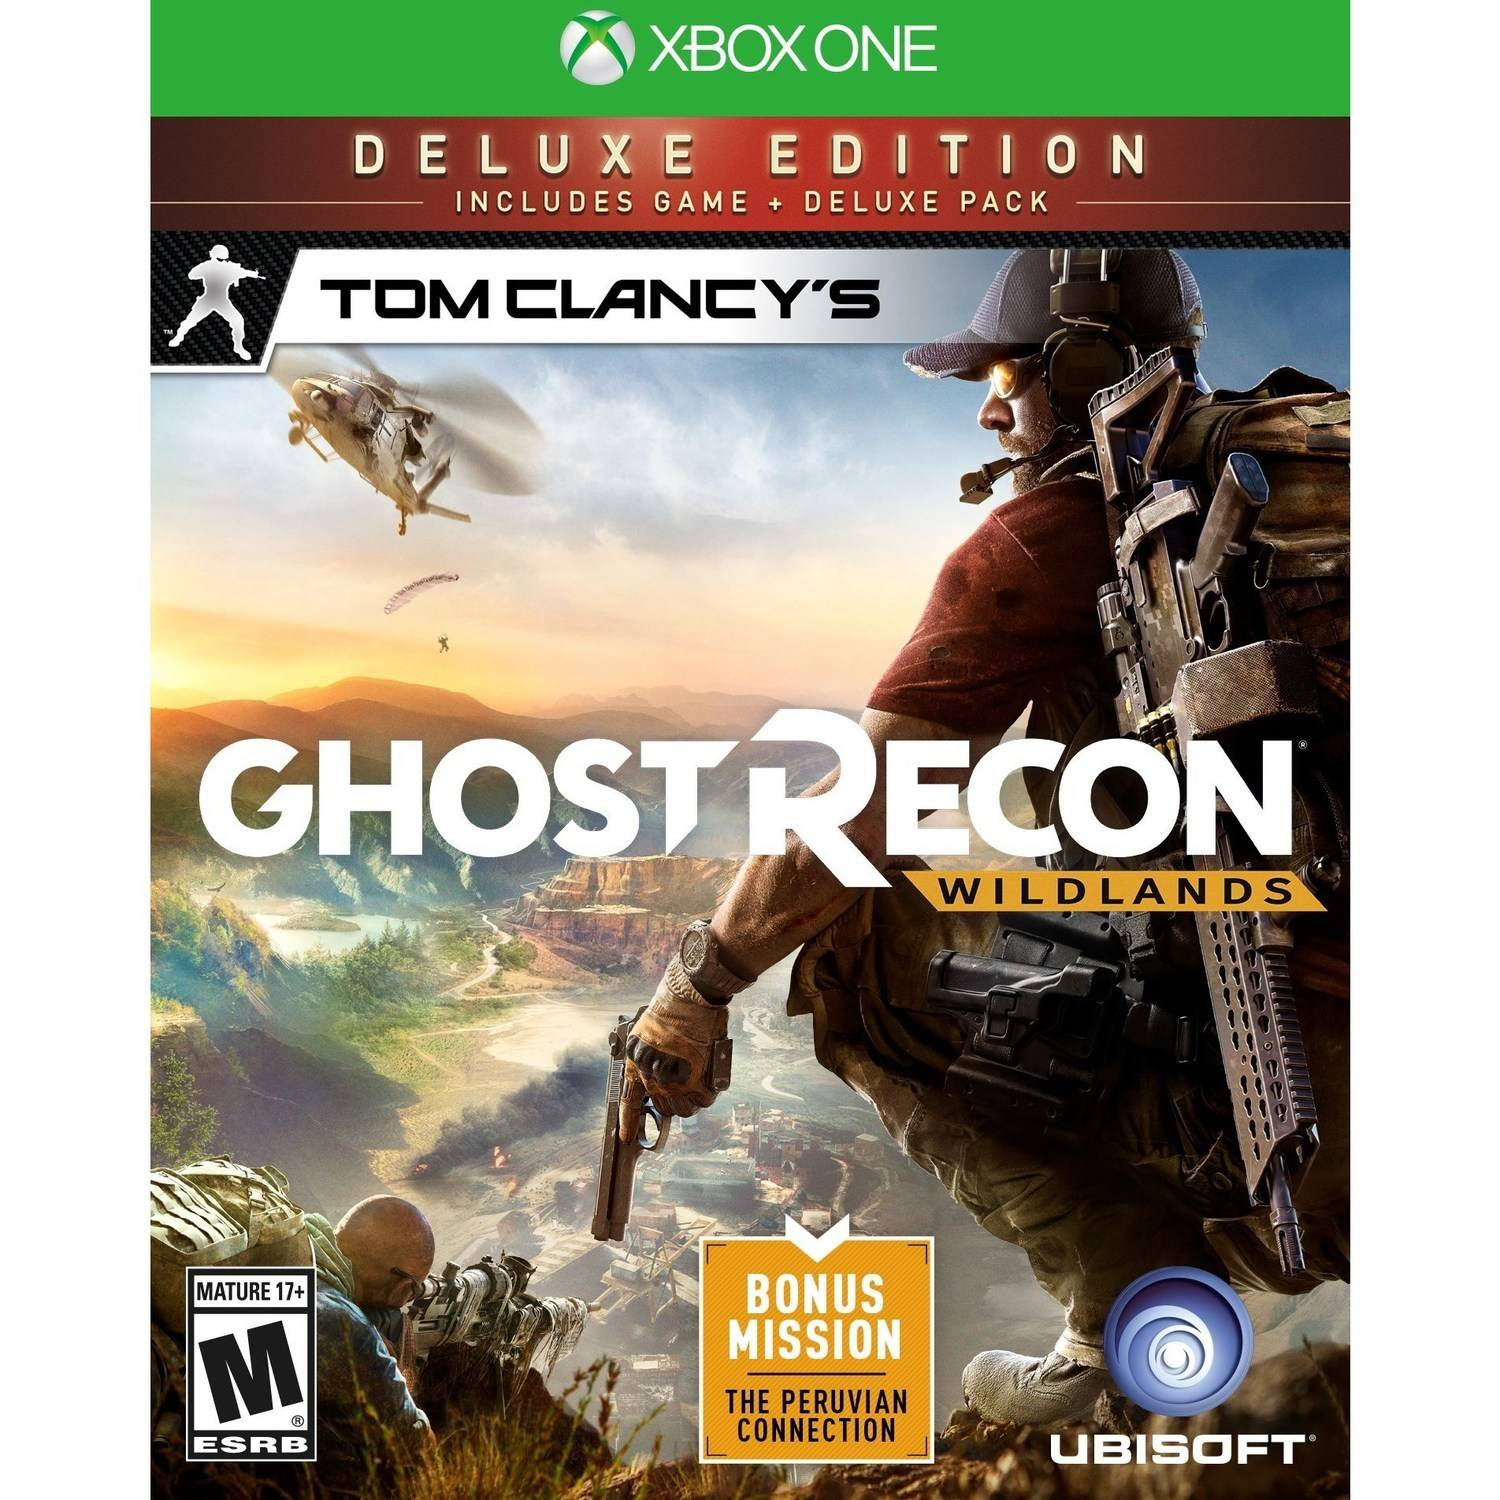 Tom Clancy's Ghost Recon Wildlands Deluxe Edition (Xbox One) by Ubisoft